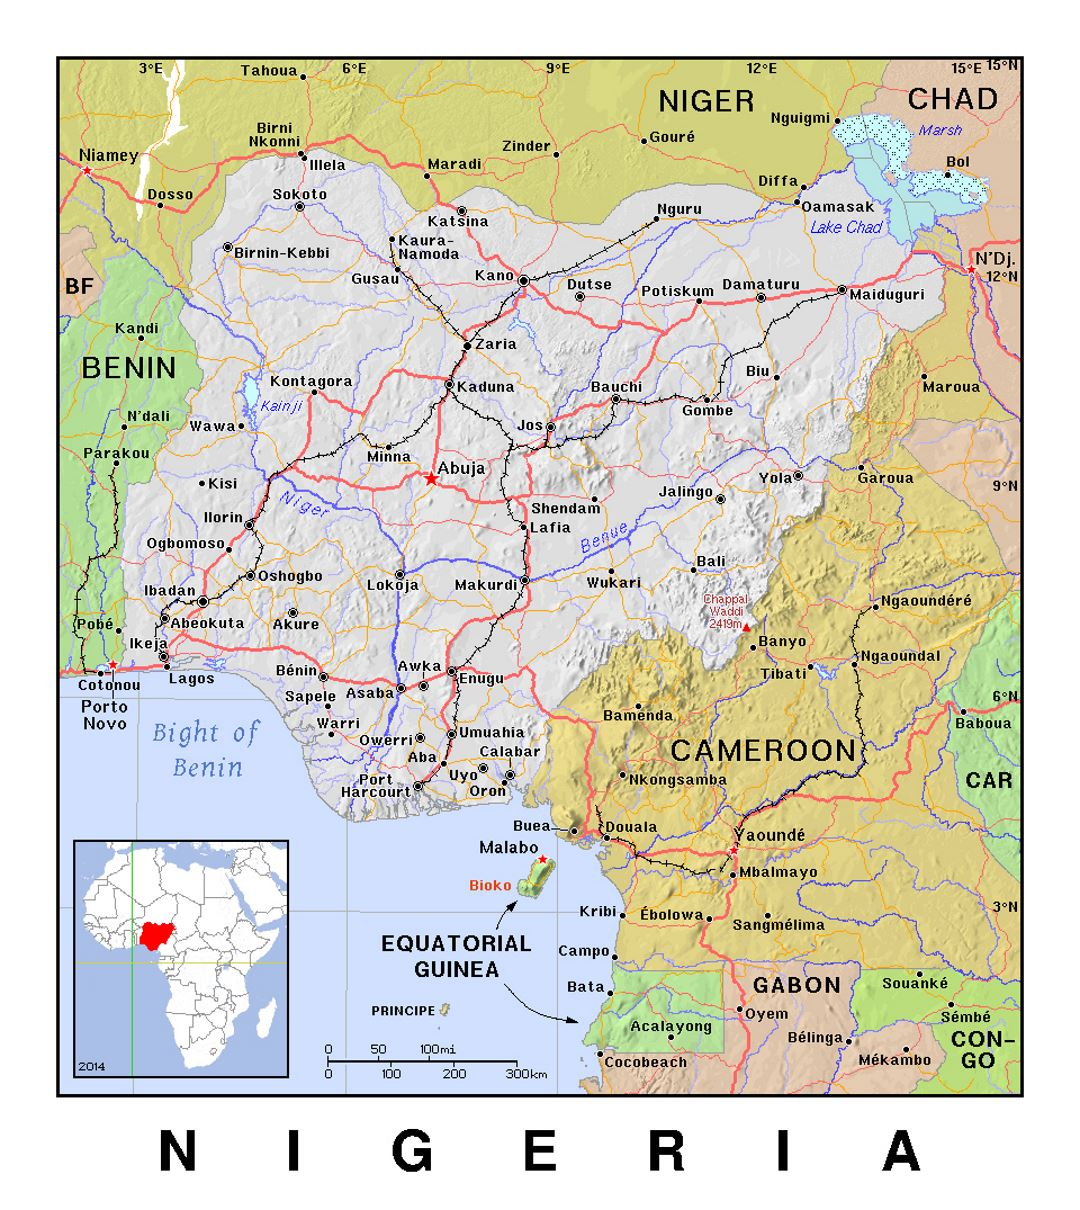 Detailed political map of Nigeria with relief